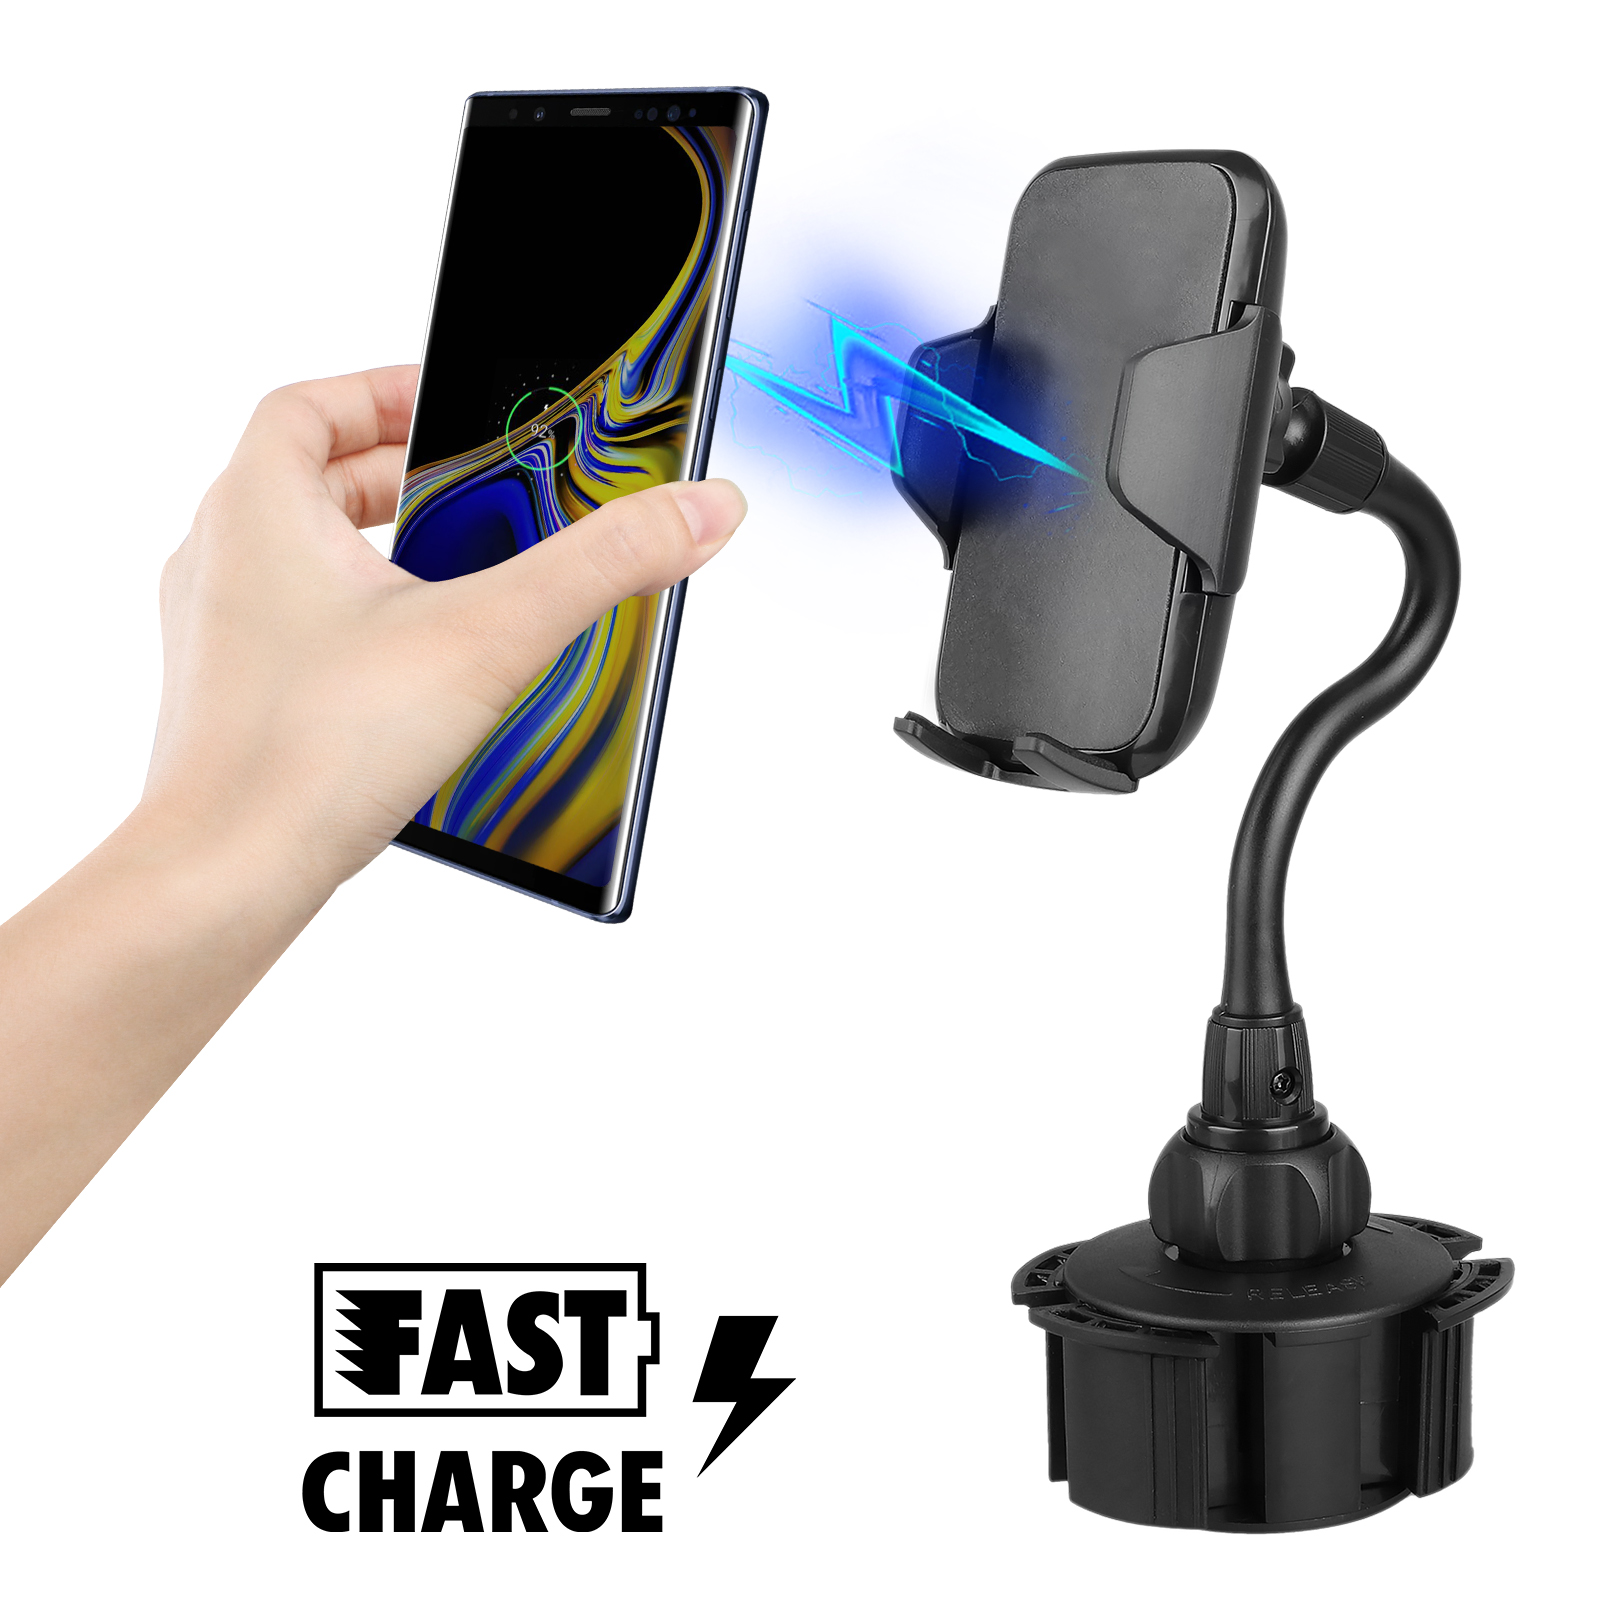 Universal Phone Wireless Charger Holder For Car Long Neck Cup Stand Cell Phone Mount Cradle For Mobile Phones Ipod Gps Including Iphone 11 11 Pro Xs Xr X 8 Plus Samsung Galaxy S10